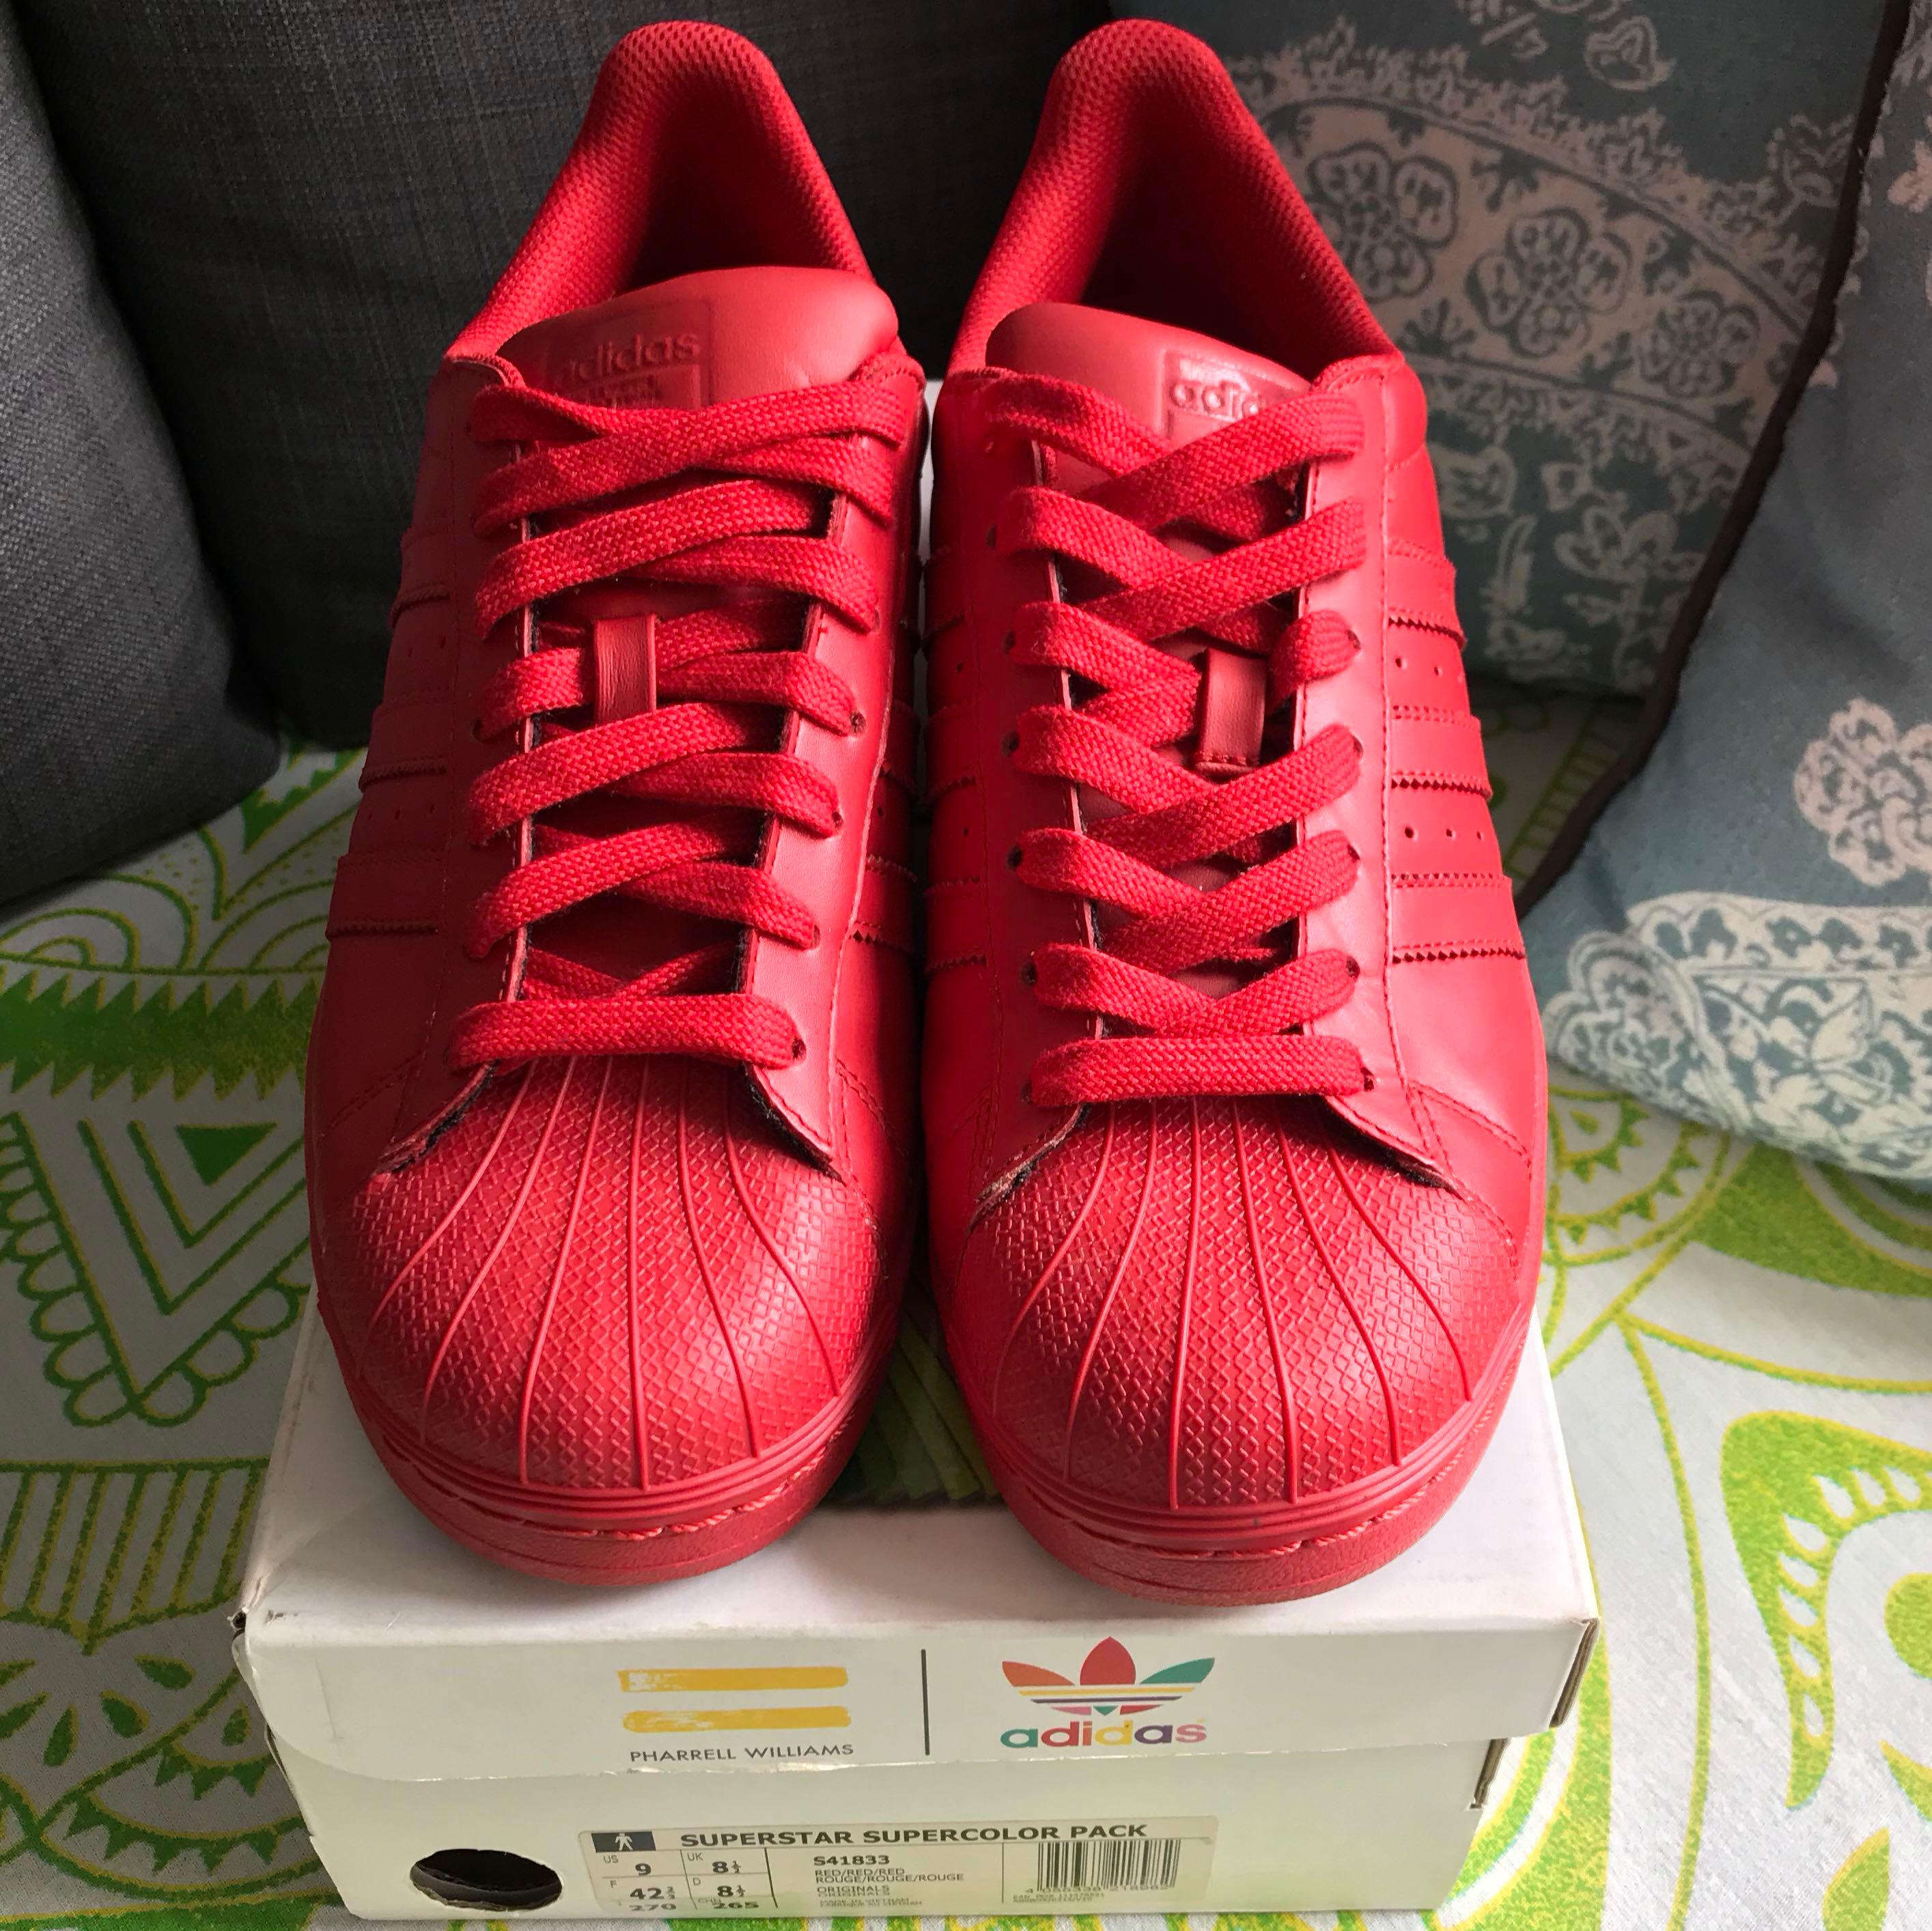 nouveaux styles a5e63 0dced Adidas Superstar Supercolor (Red), Men's Fashion, Footwear ...